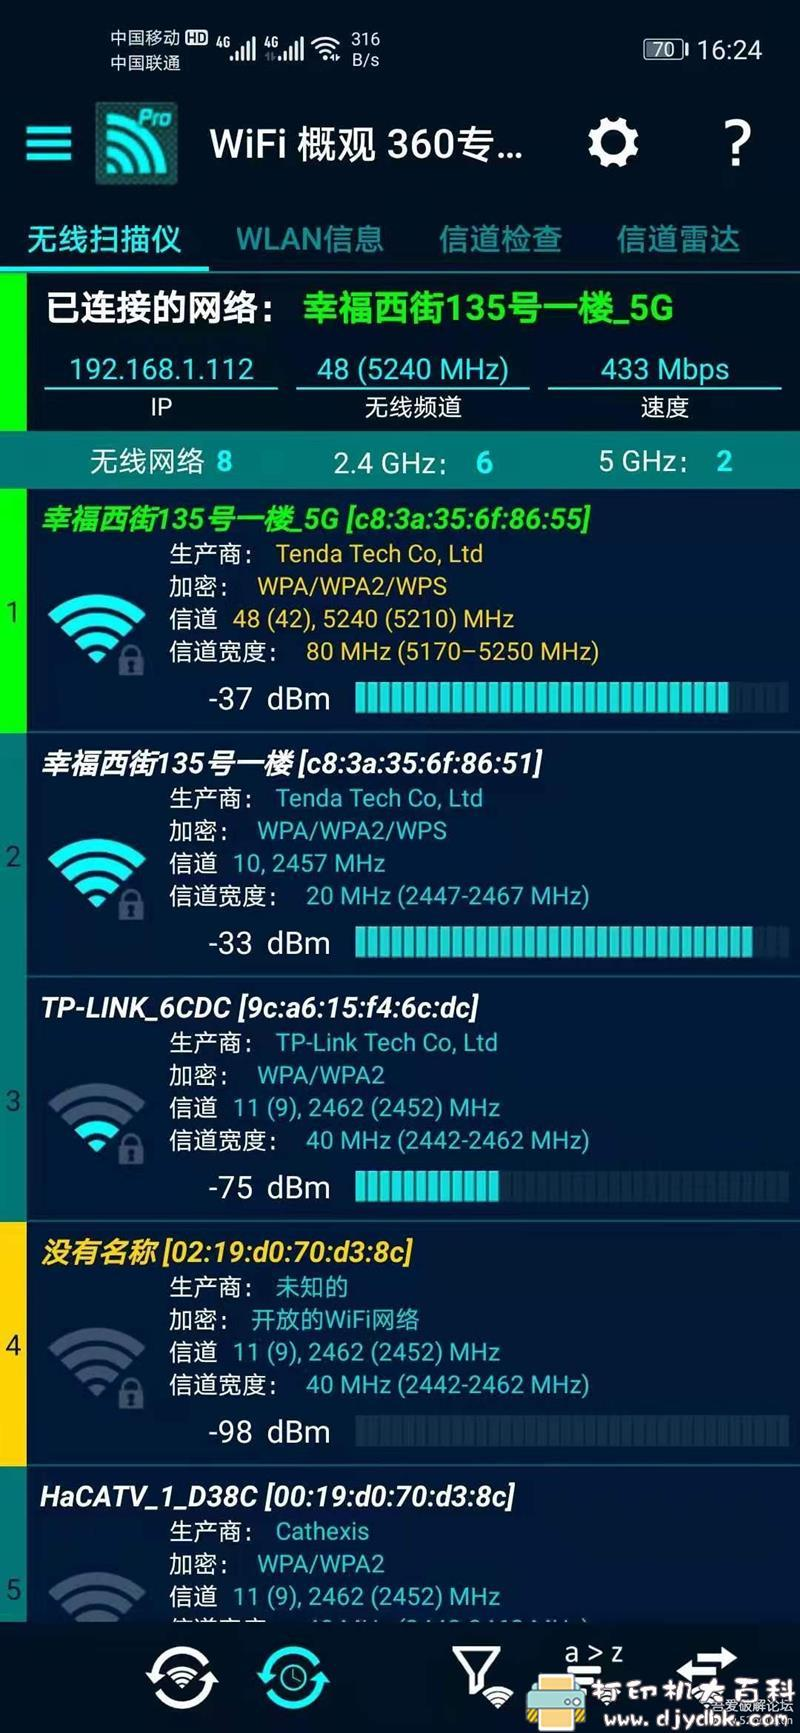 [Android]WIFI概观360专业版4.62.08,附使用教程 配图 No.1